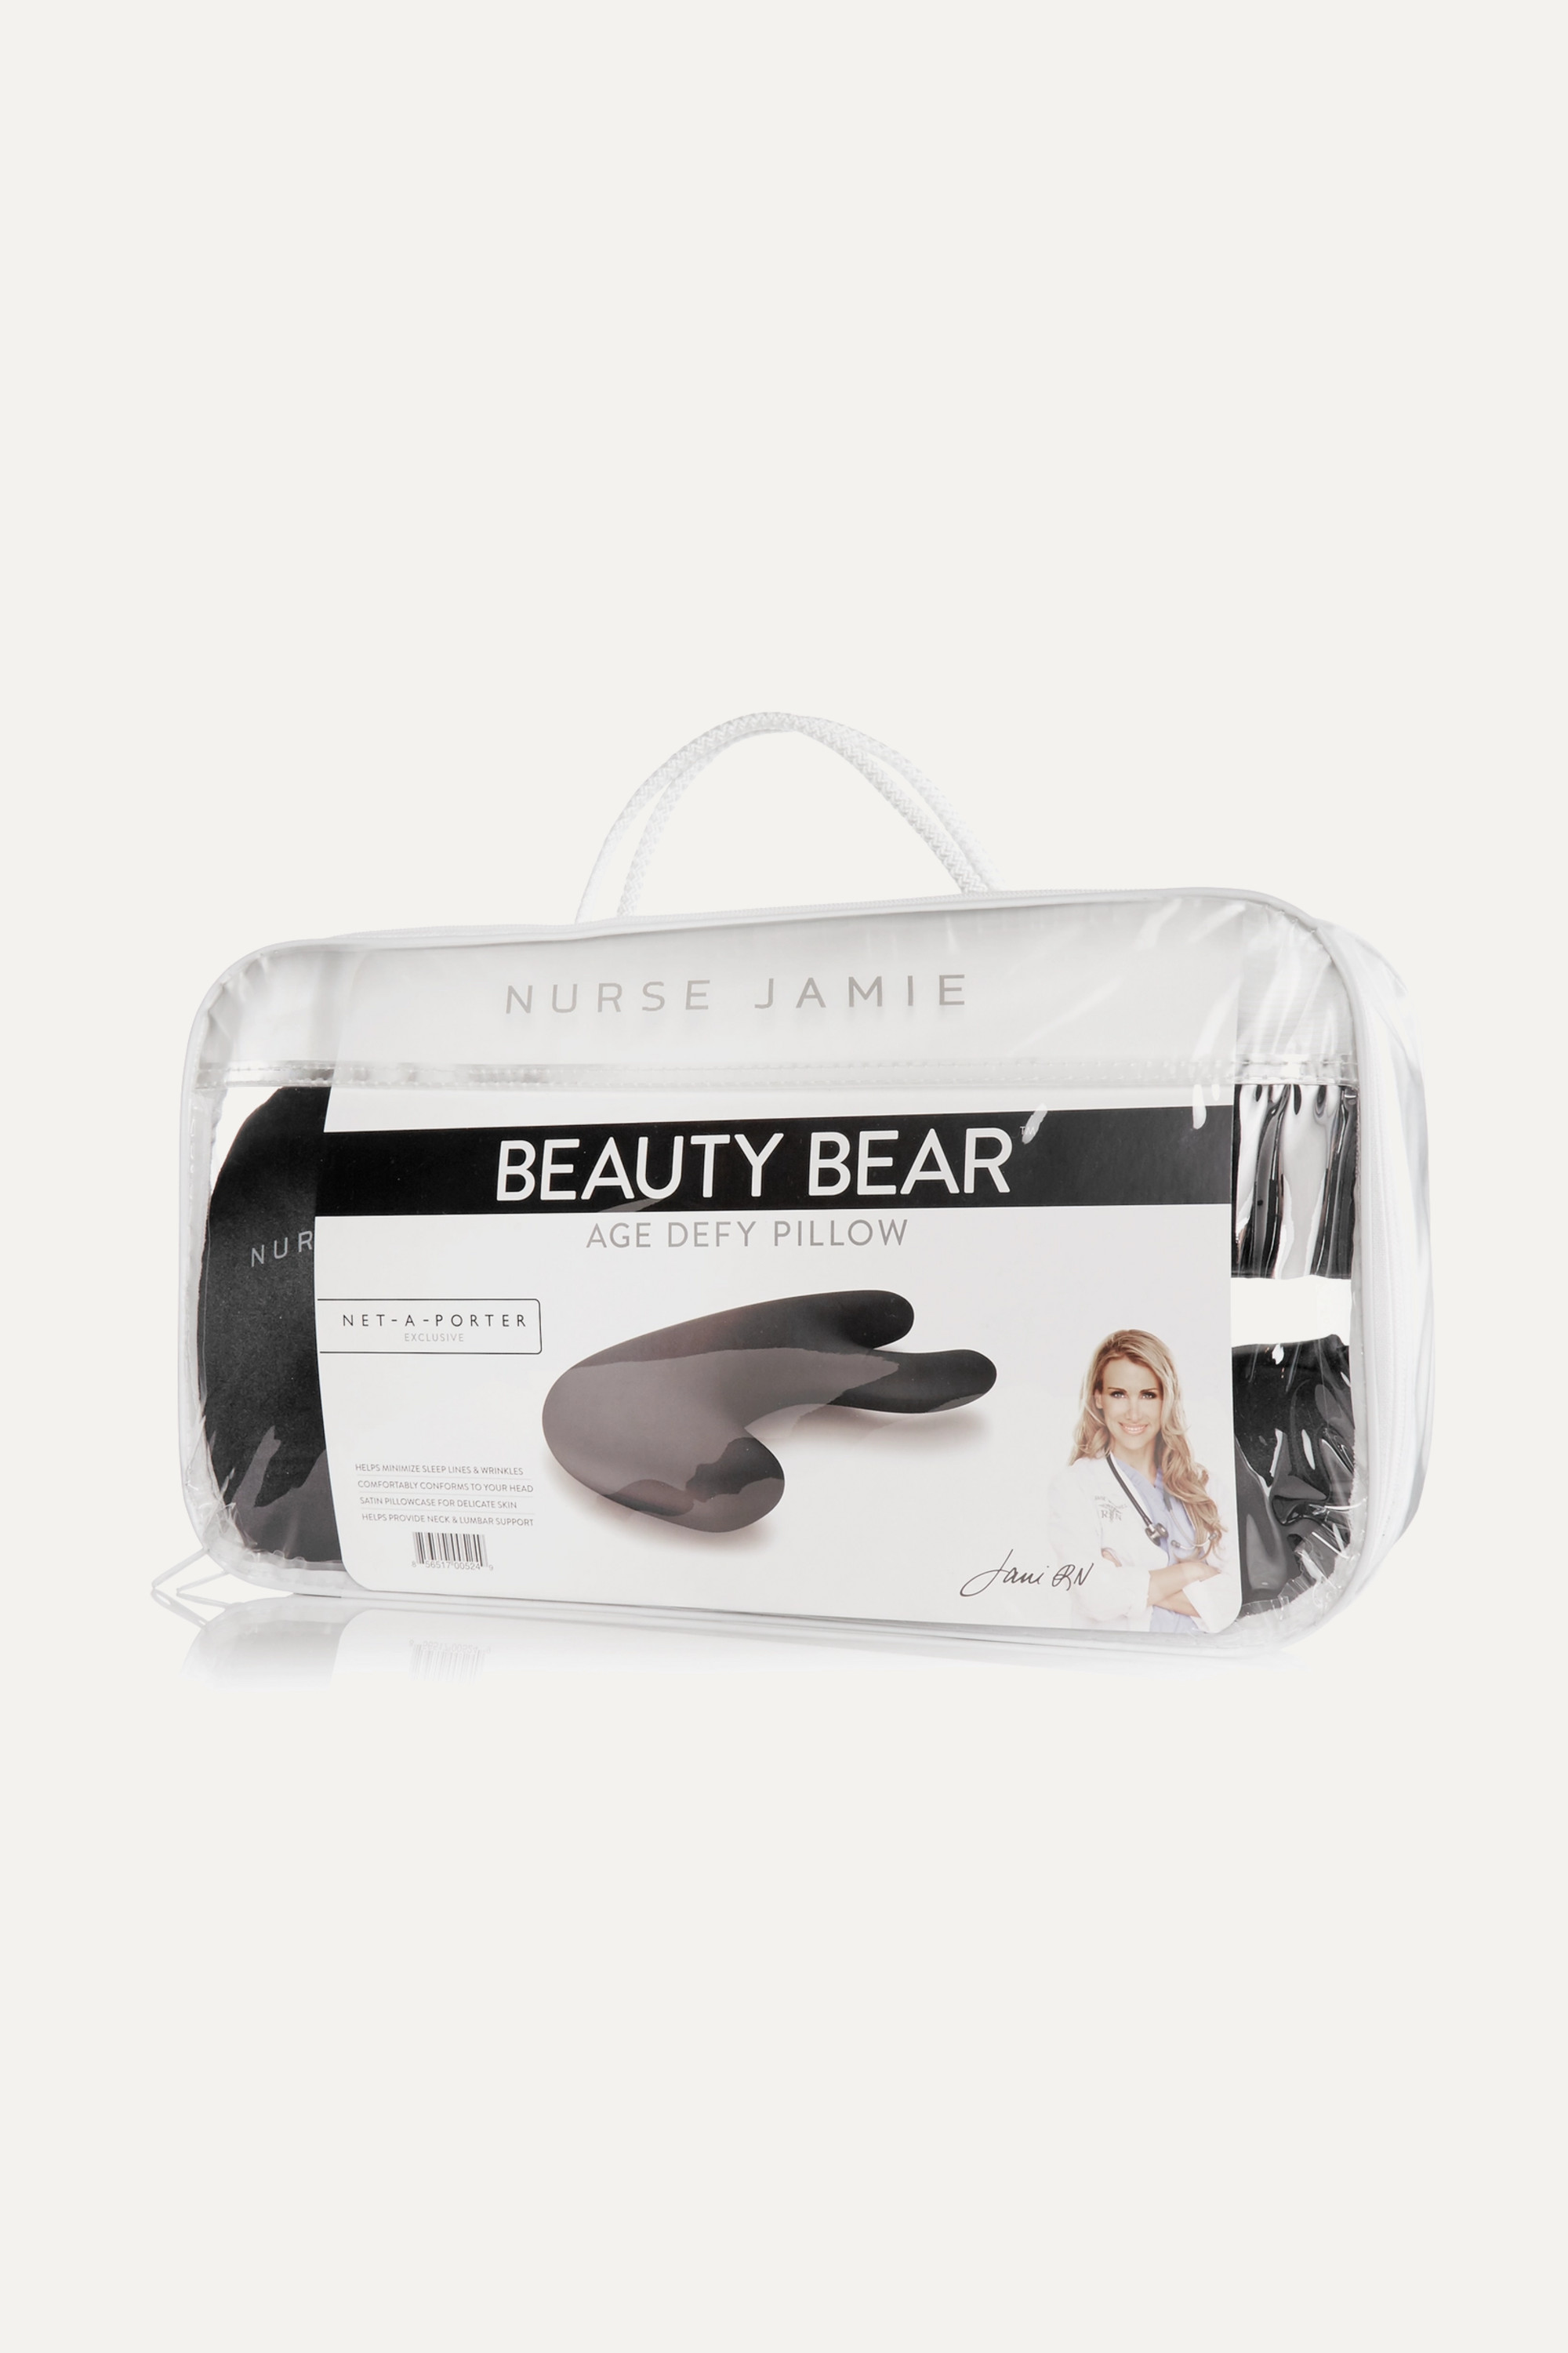 Nurse Jamie Beauty Bear™ Age Defy Pillow